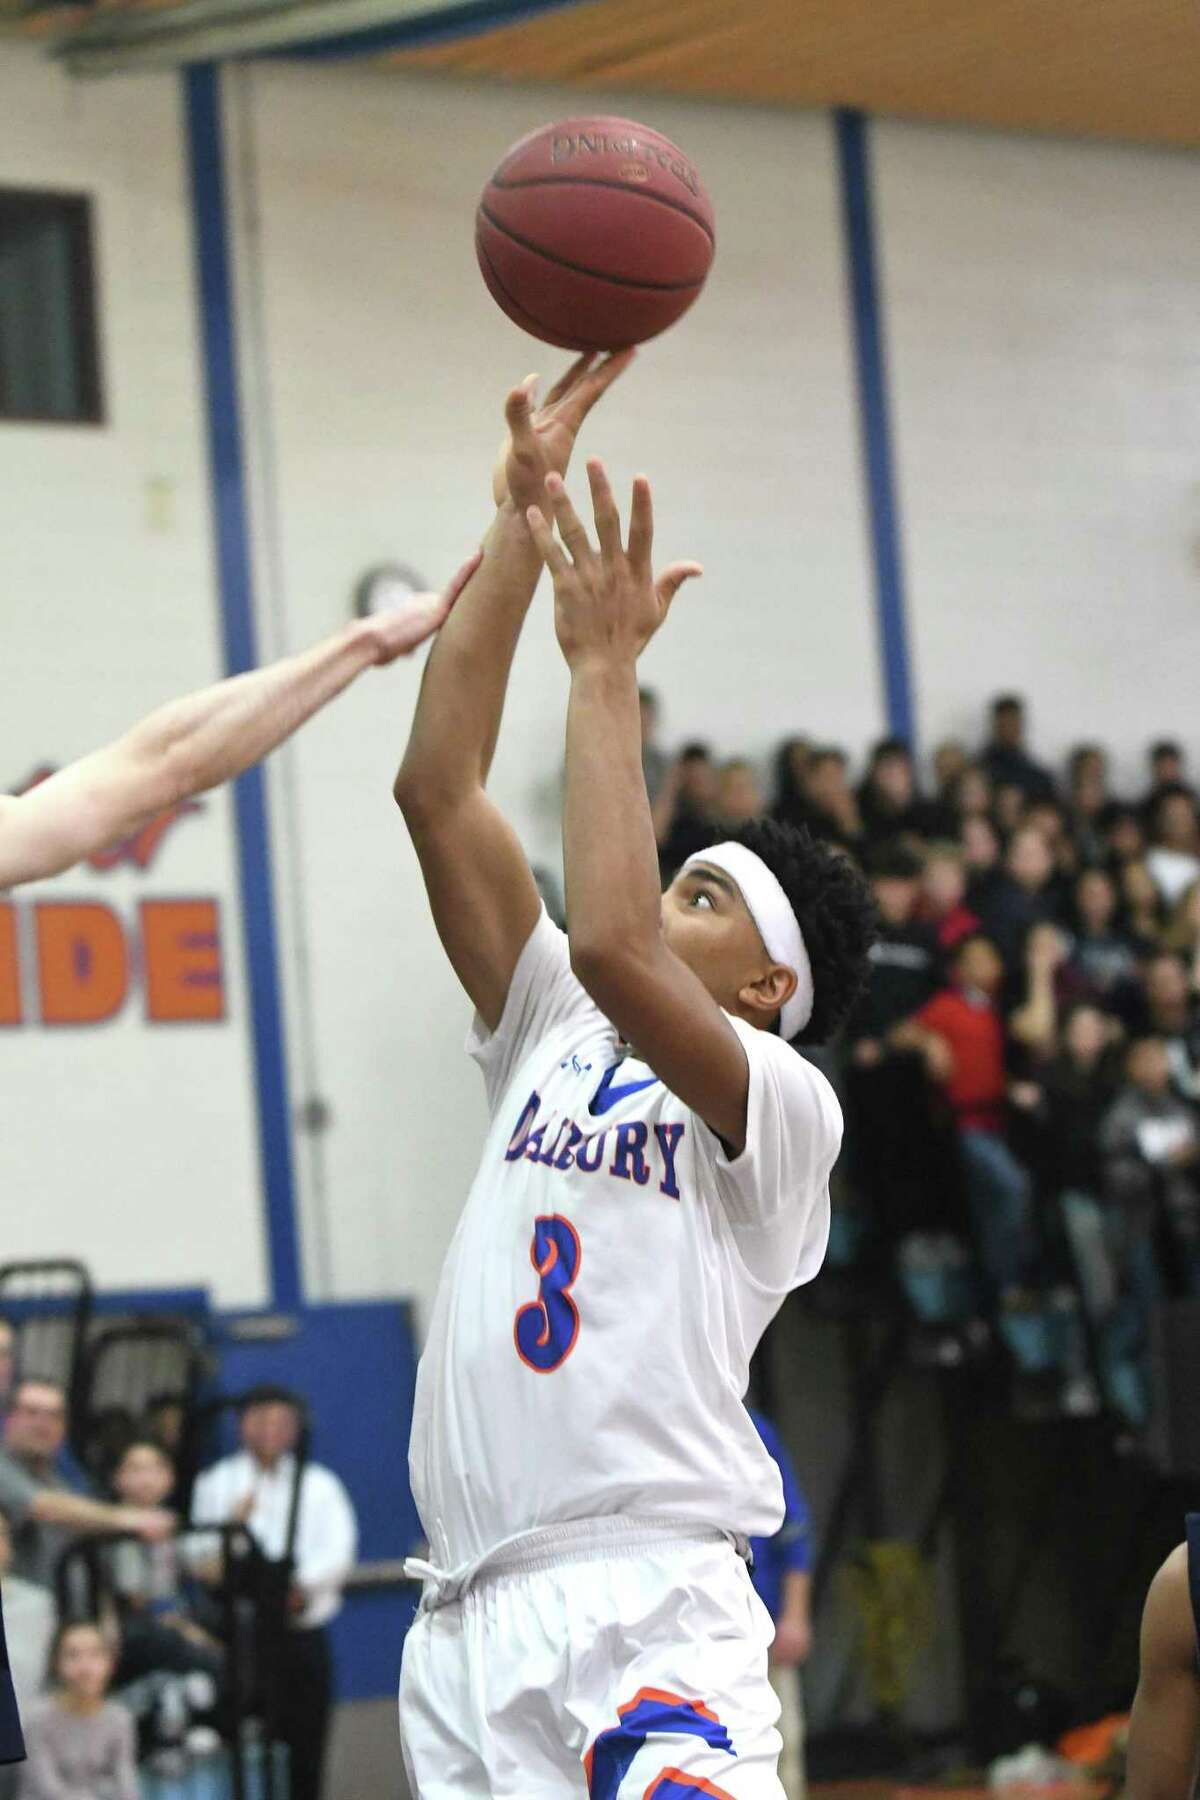 Danbury?'s Jordon Brown during the championship game between Danbury High and Immaculate at the 18th-annual News-Times Tip-Off Classic boys basketball tournament at Danbury High School, Dec. 20, 2017.